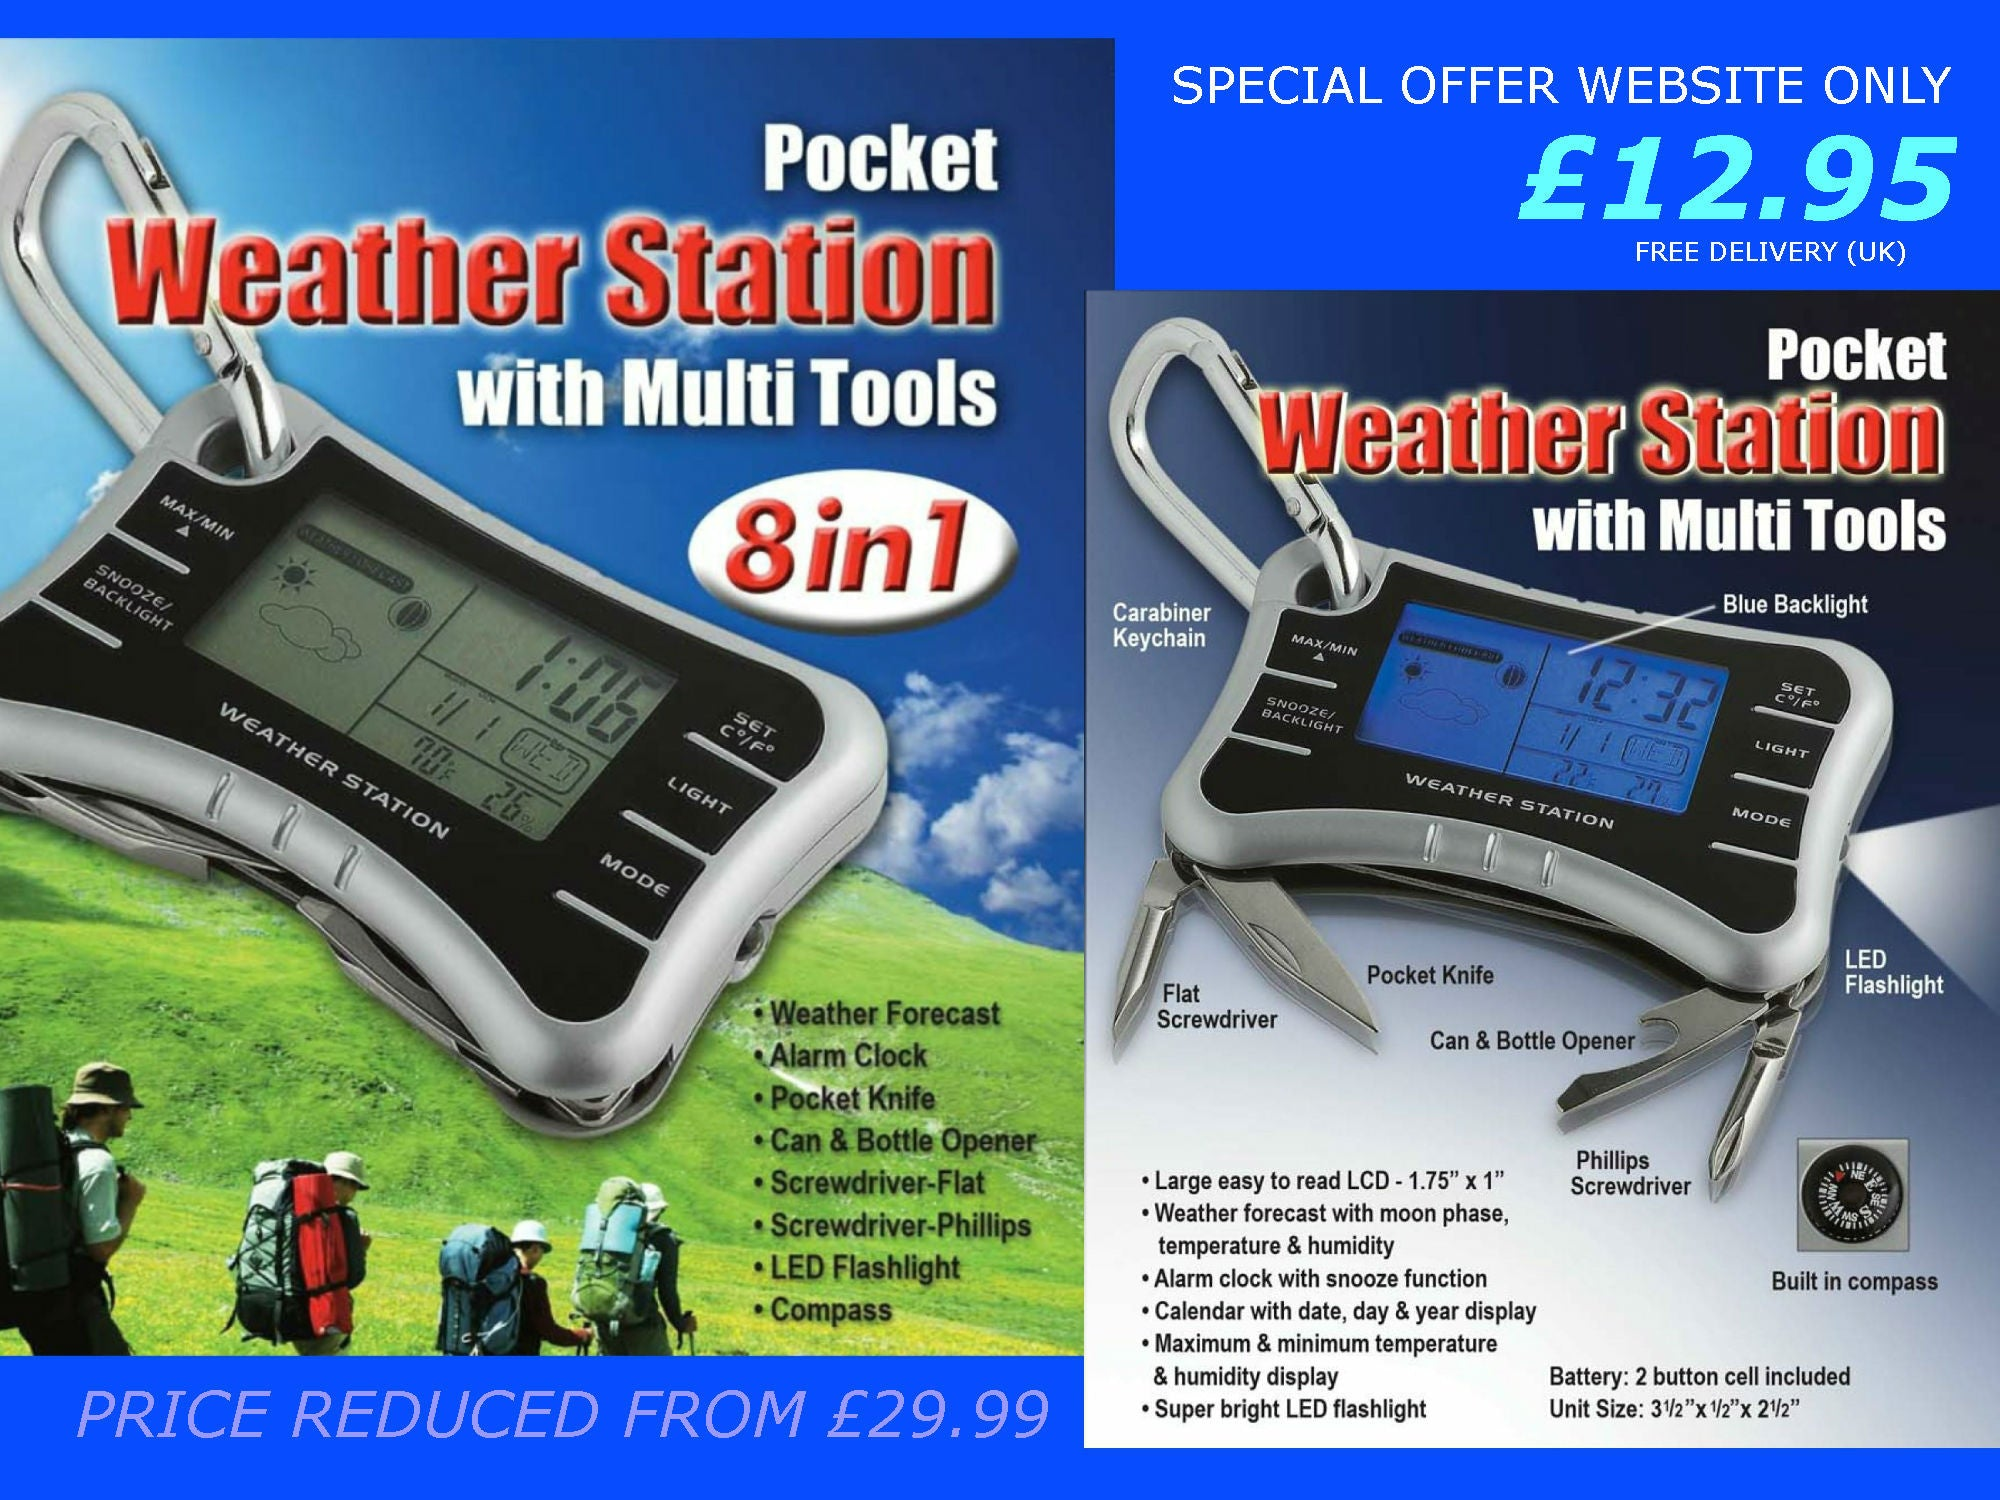 Pocket Weather Station with Multi Tools